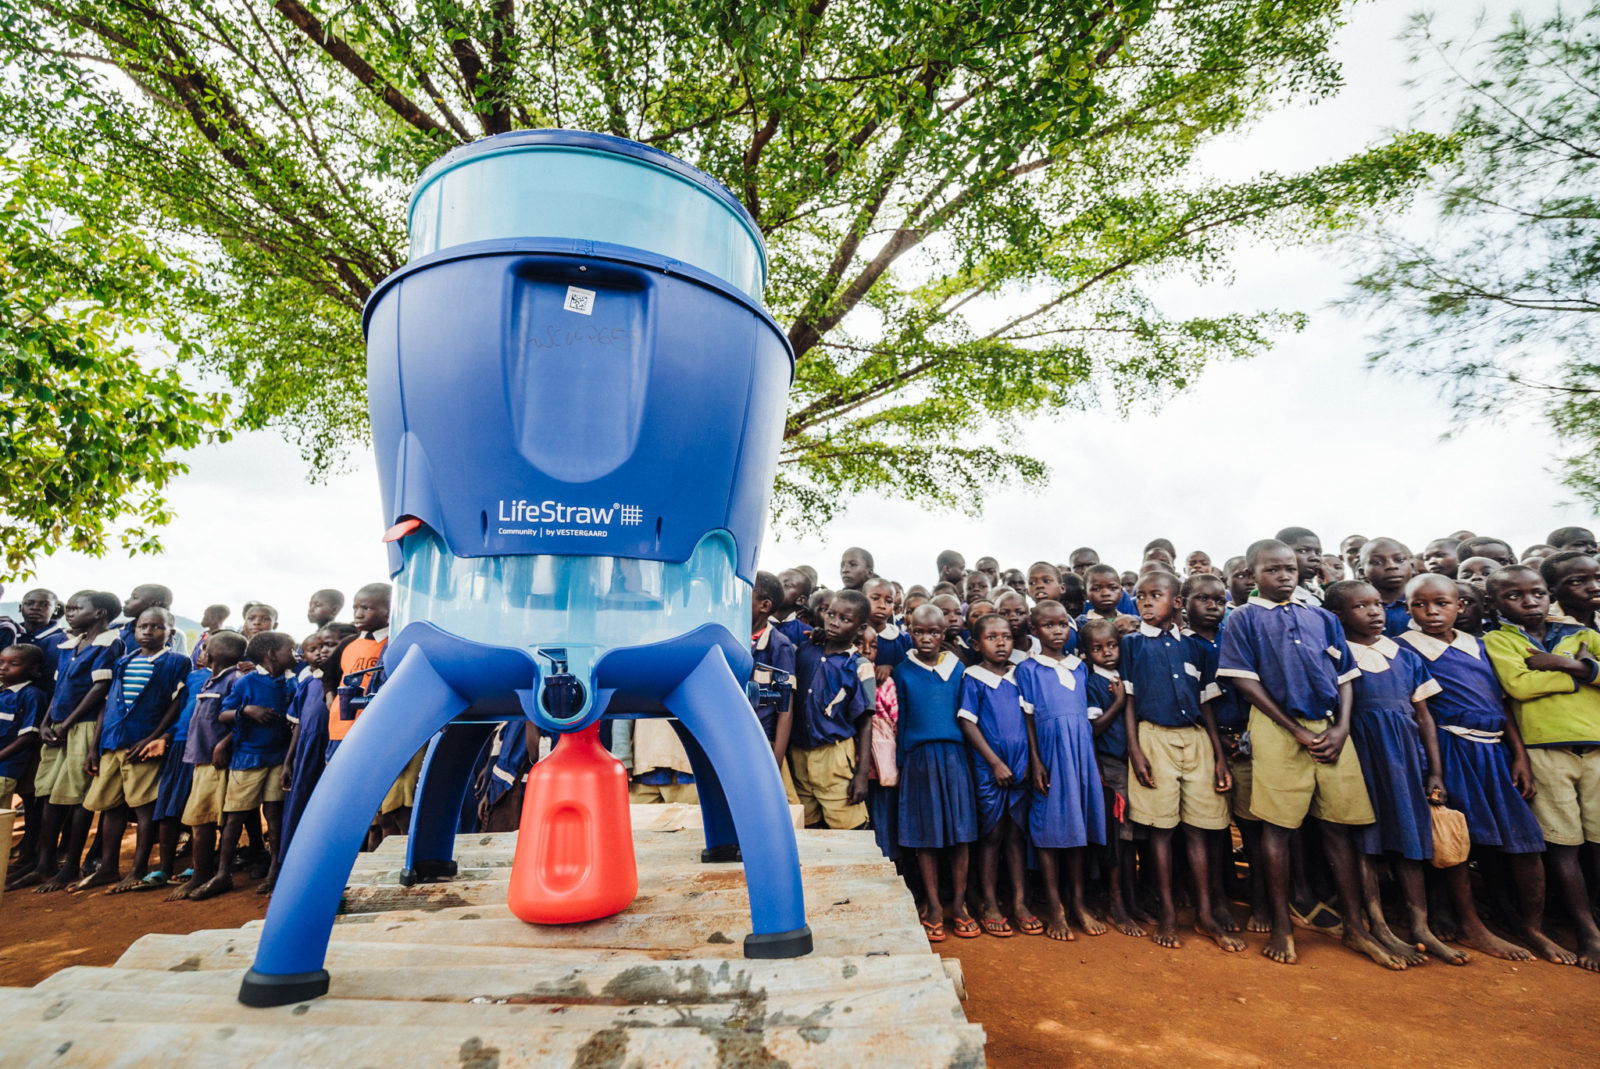 LIfeStraw Community - In Action in Africa